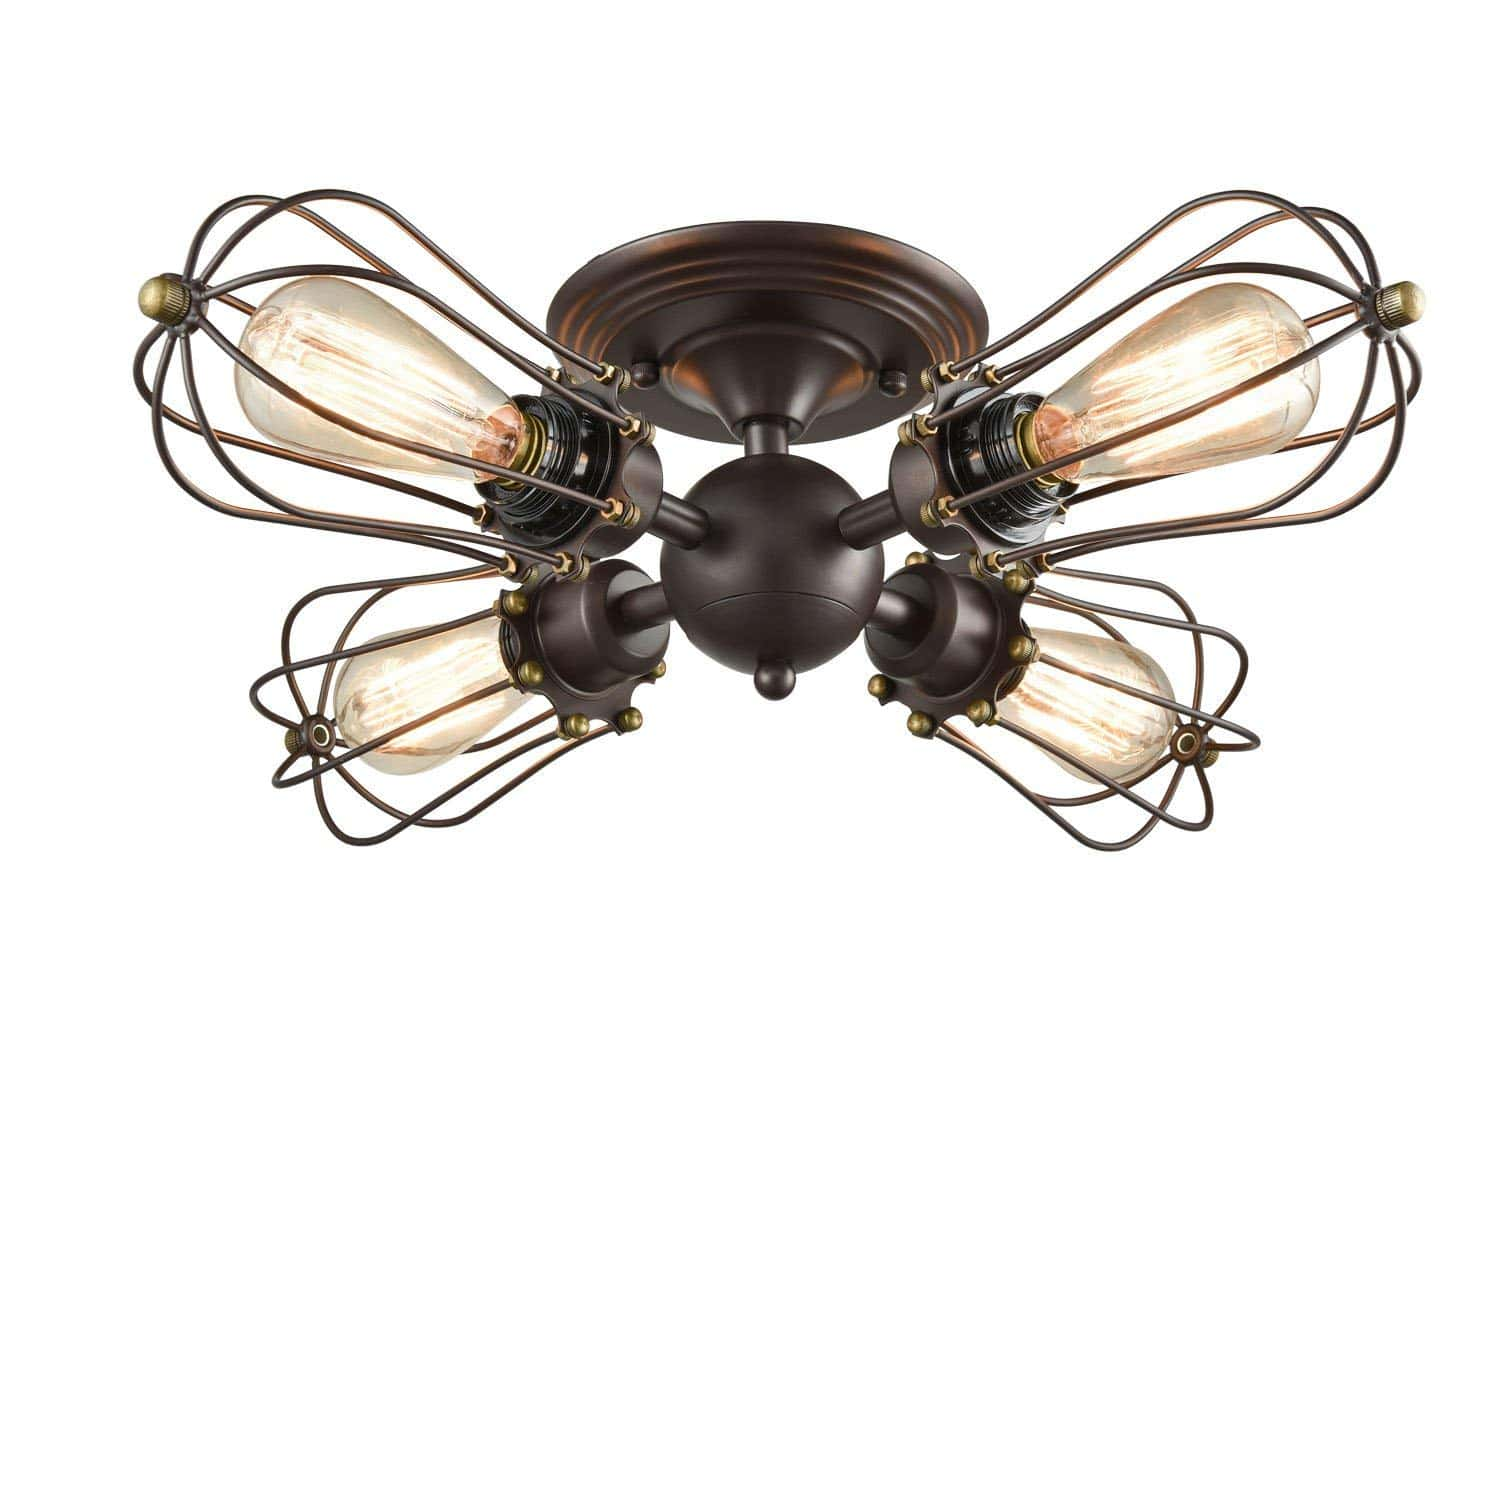 Vintage Wire Cage Semi-flush Mount Ceiling Light 4 Light